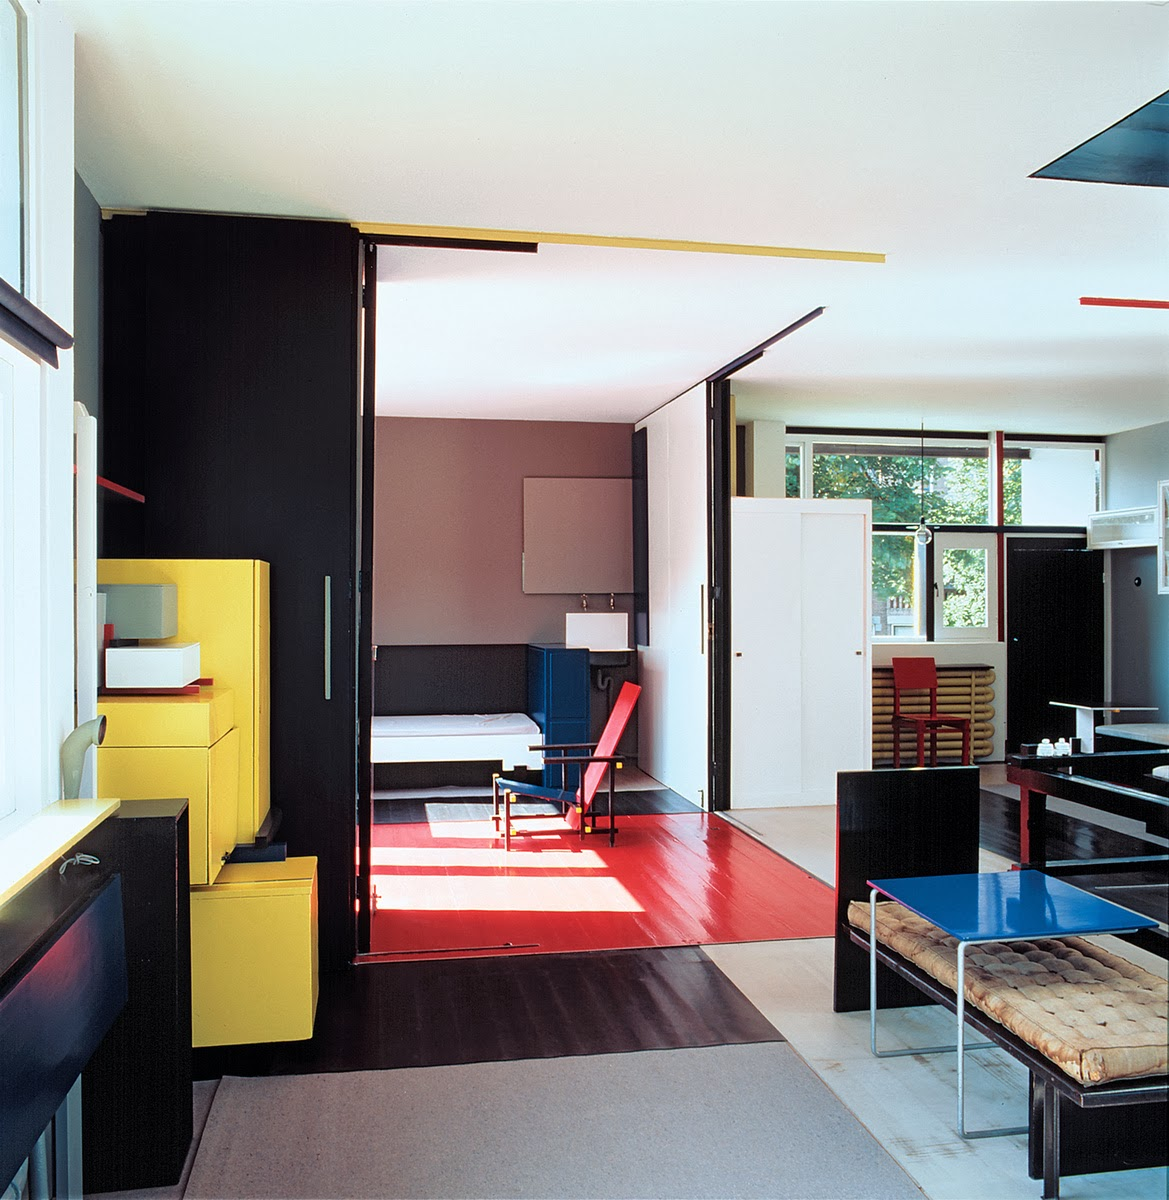 Schroeder house in utrecht for Epaisseur mur interieur